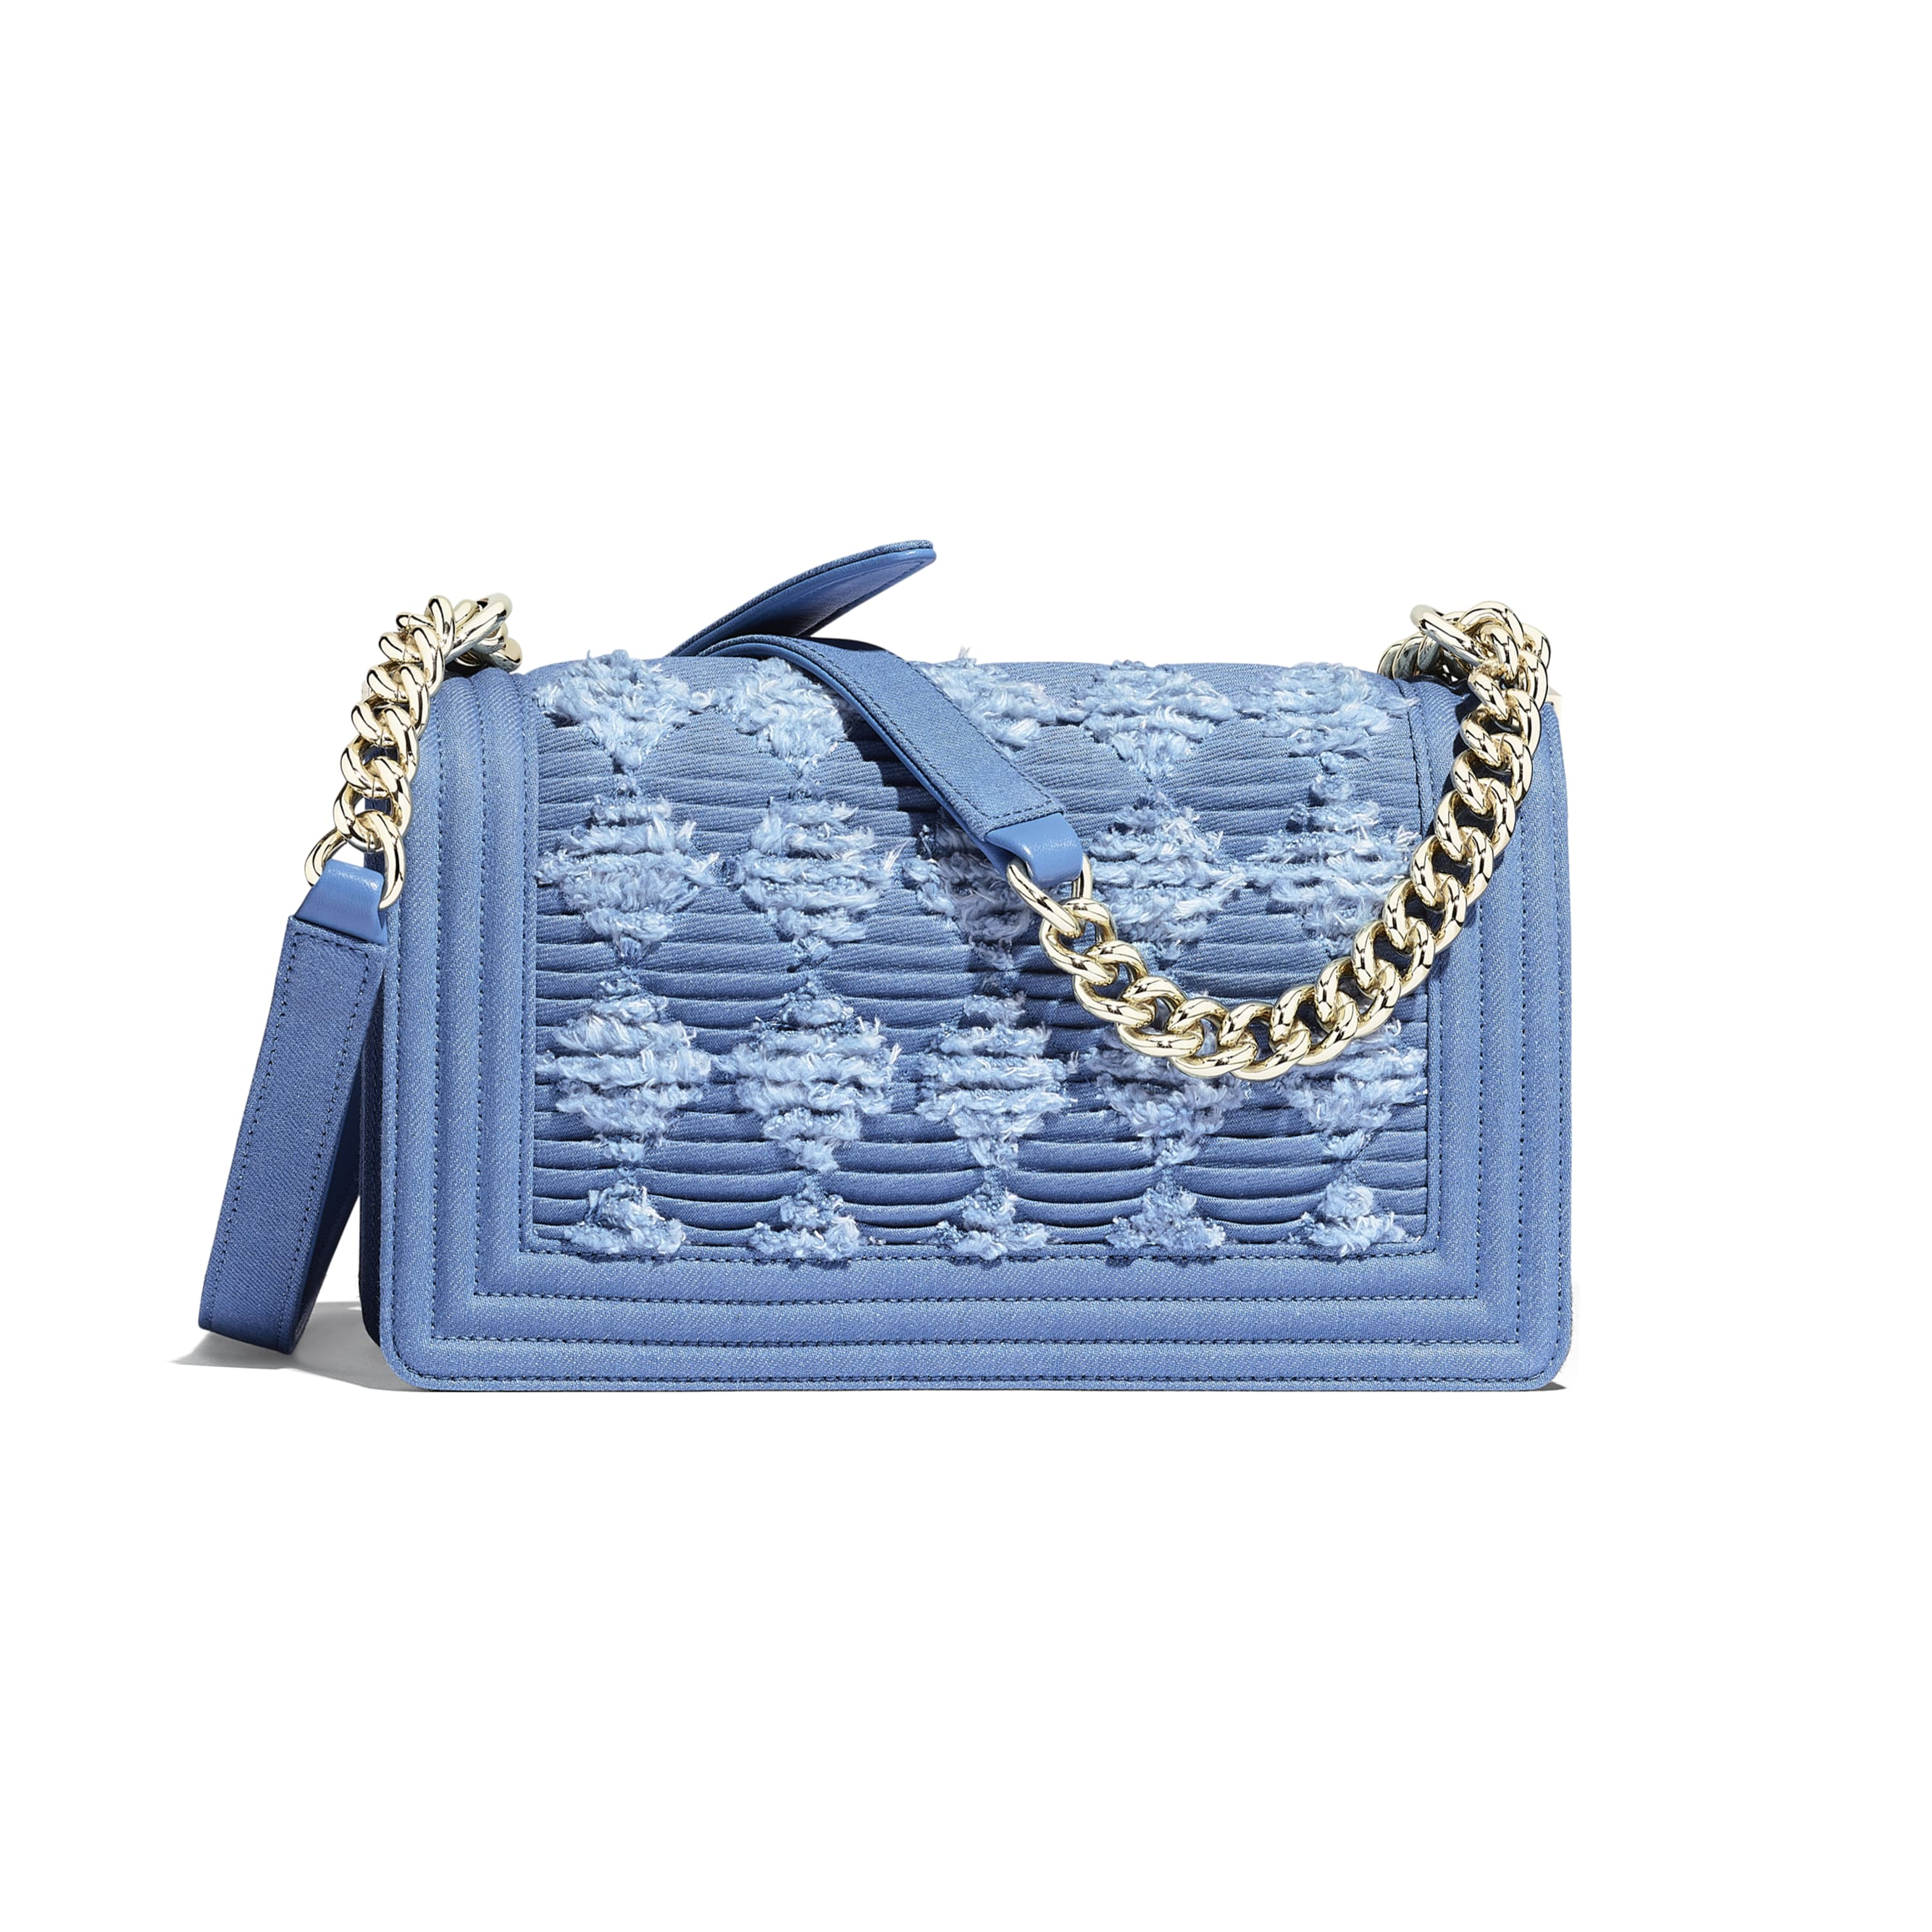 BOY CHANEL Handbag - Light Blue -  Pleated Denim & Gold-Tone Metal - CHANEL - Alternative view - see standard sized version